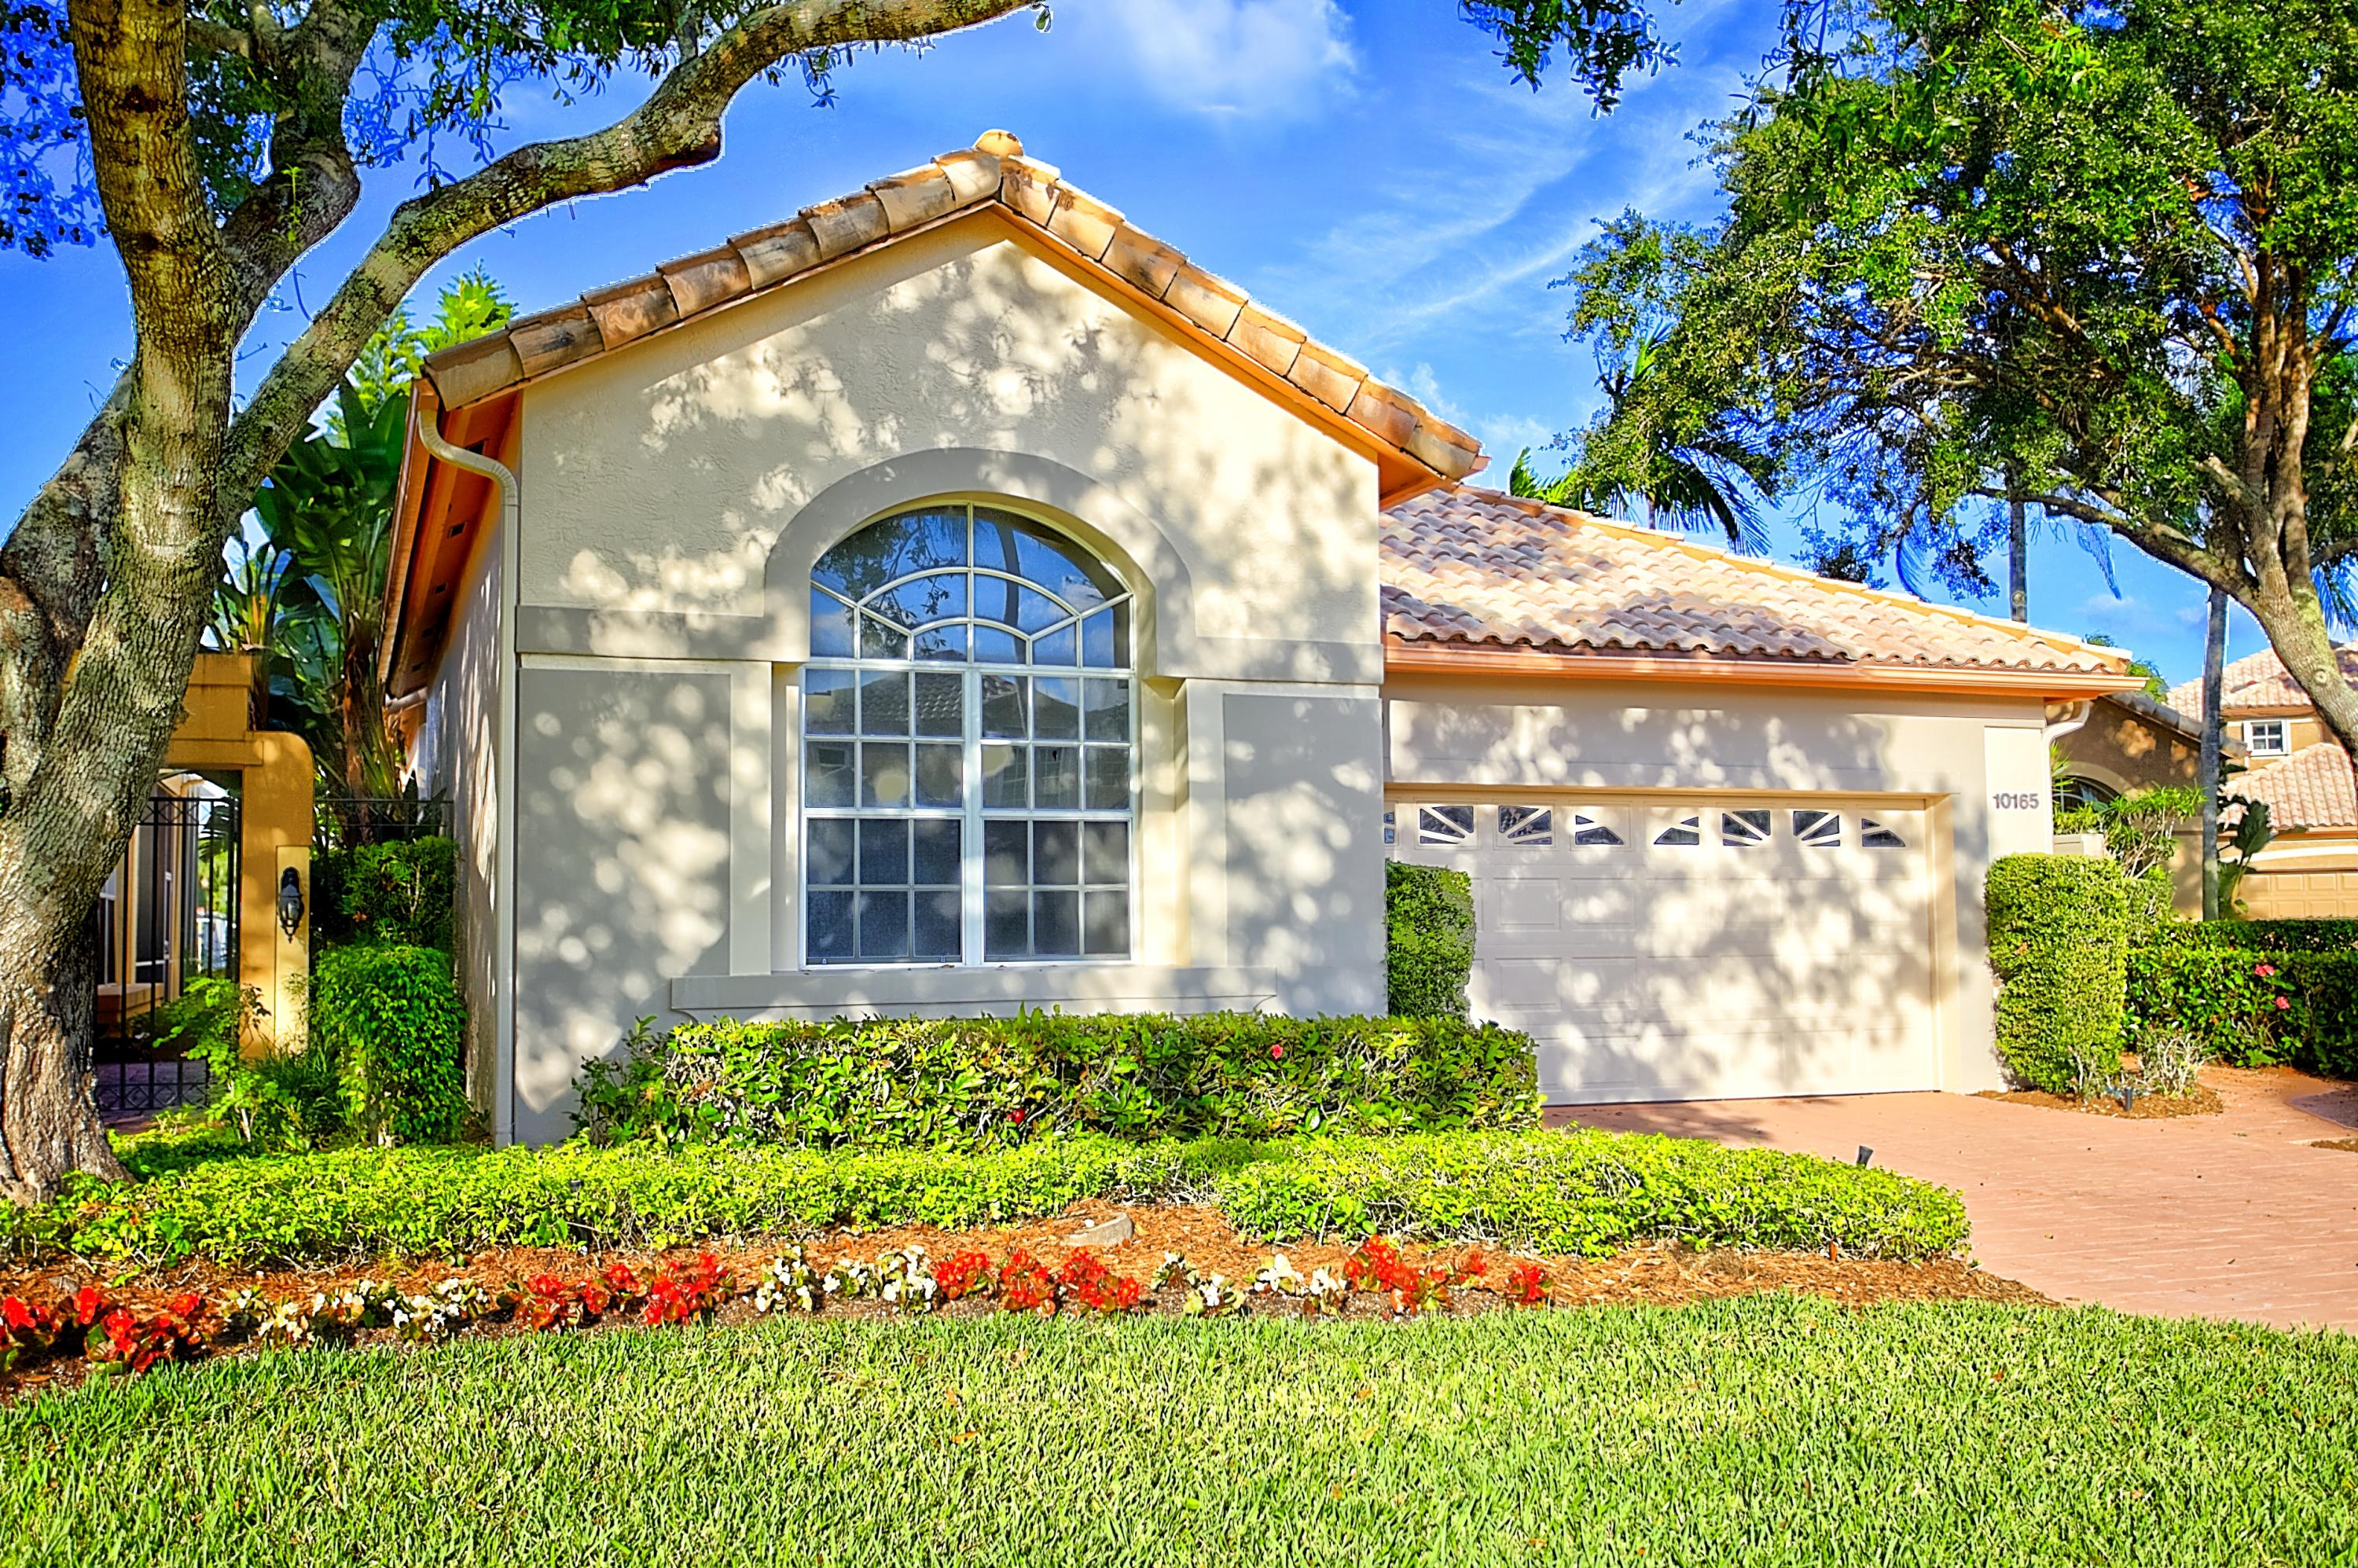 10165 Osprey Trace West Palm Beach, FL 33412